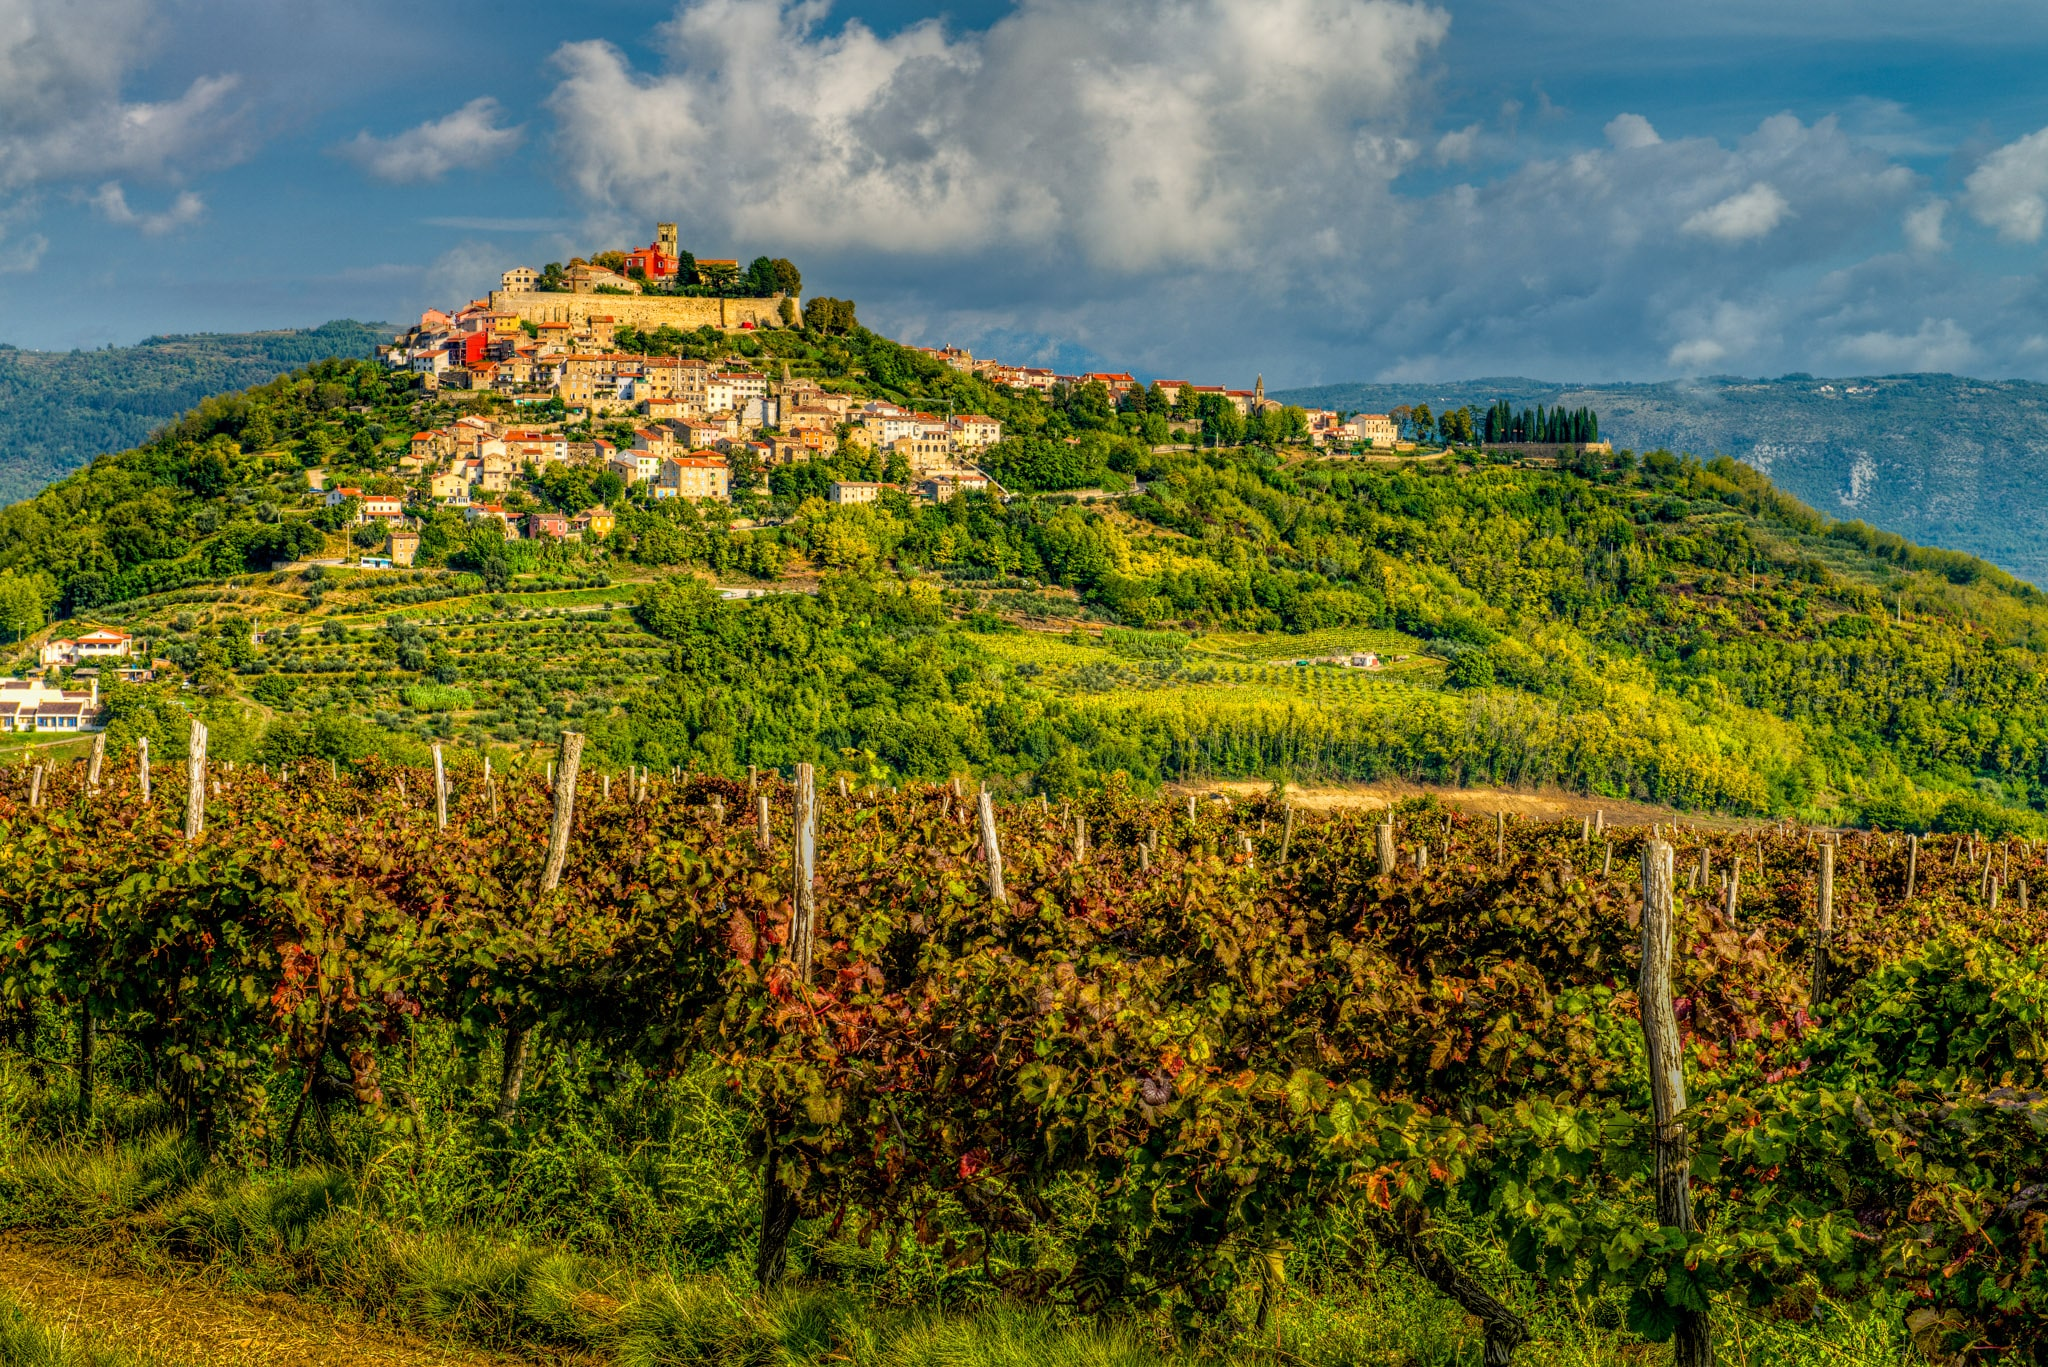 Looking westward toward the hilltop Medieval Istrian village of Motovun, Croatia, with vineyards in the foreground.